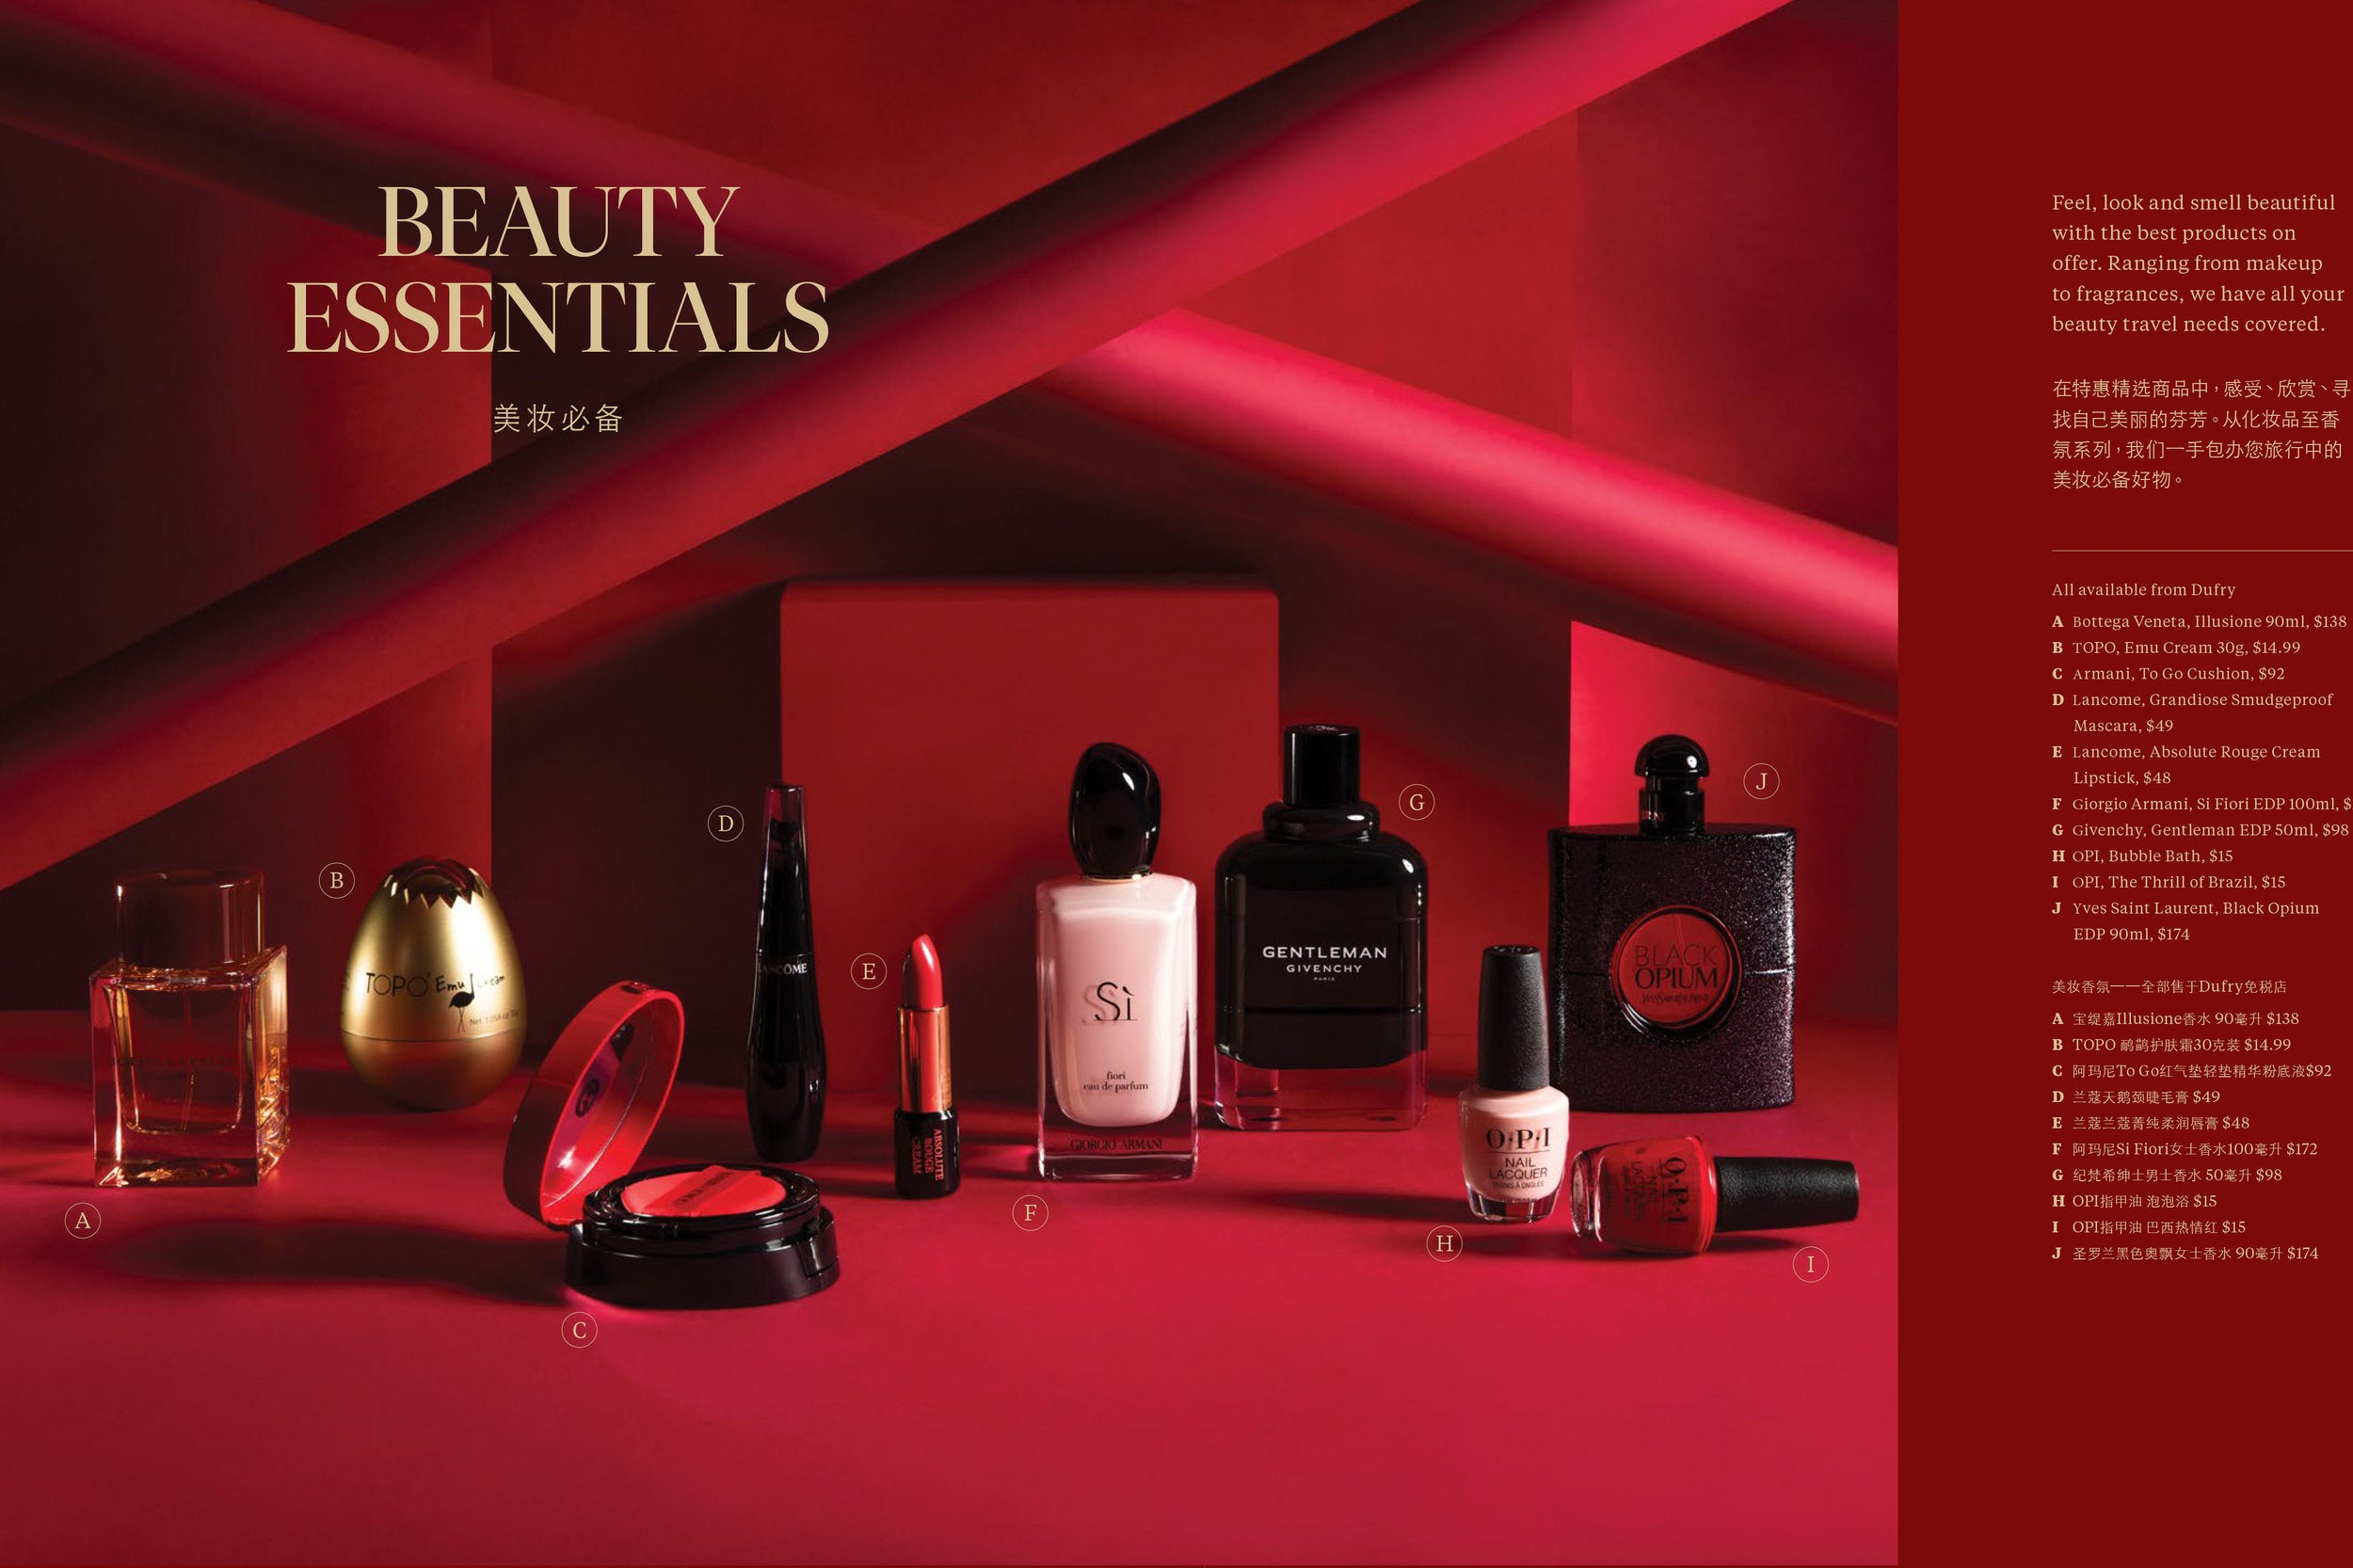 A red photography setup with expensive red bottles of perfume & jewellery on a red table